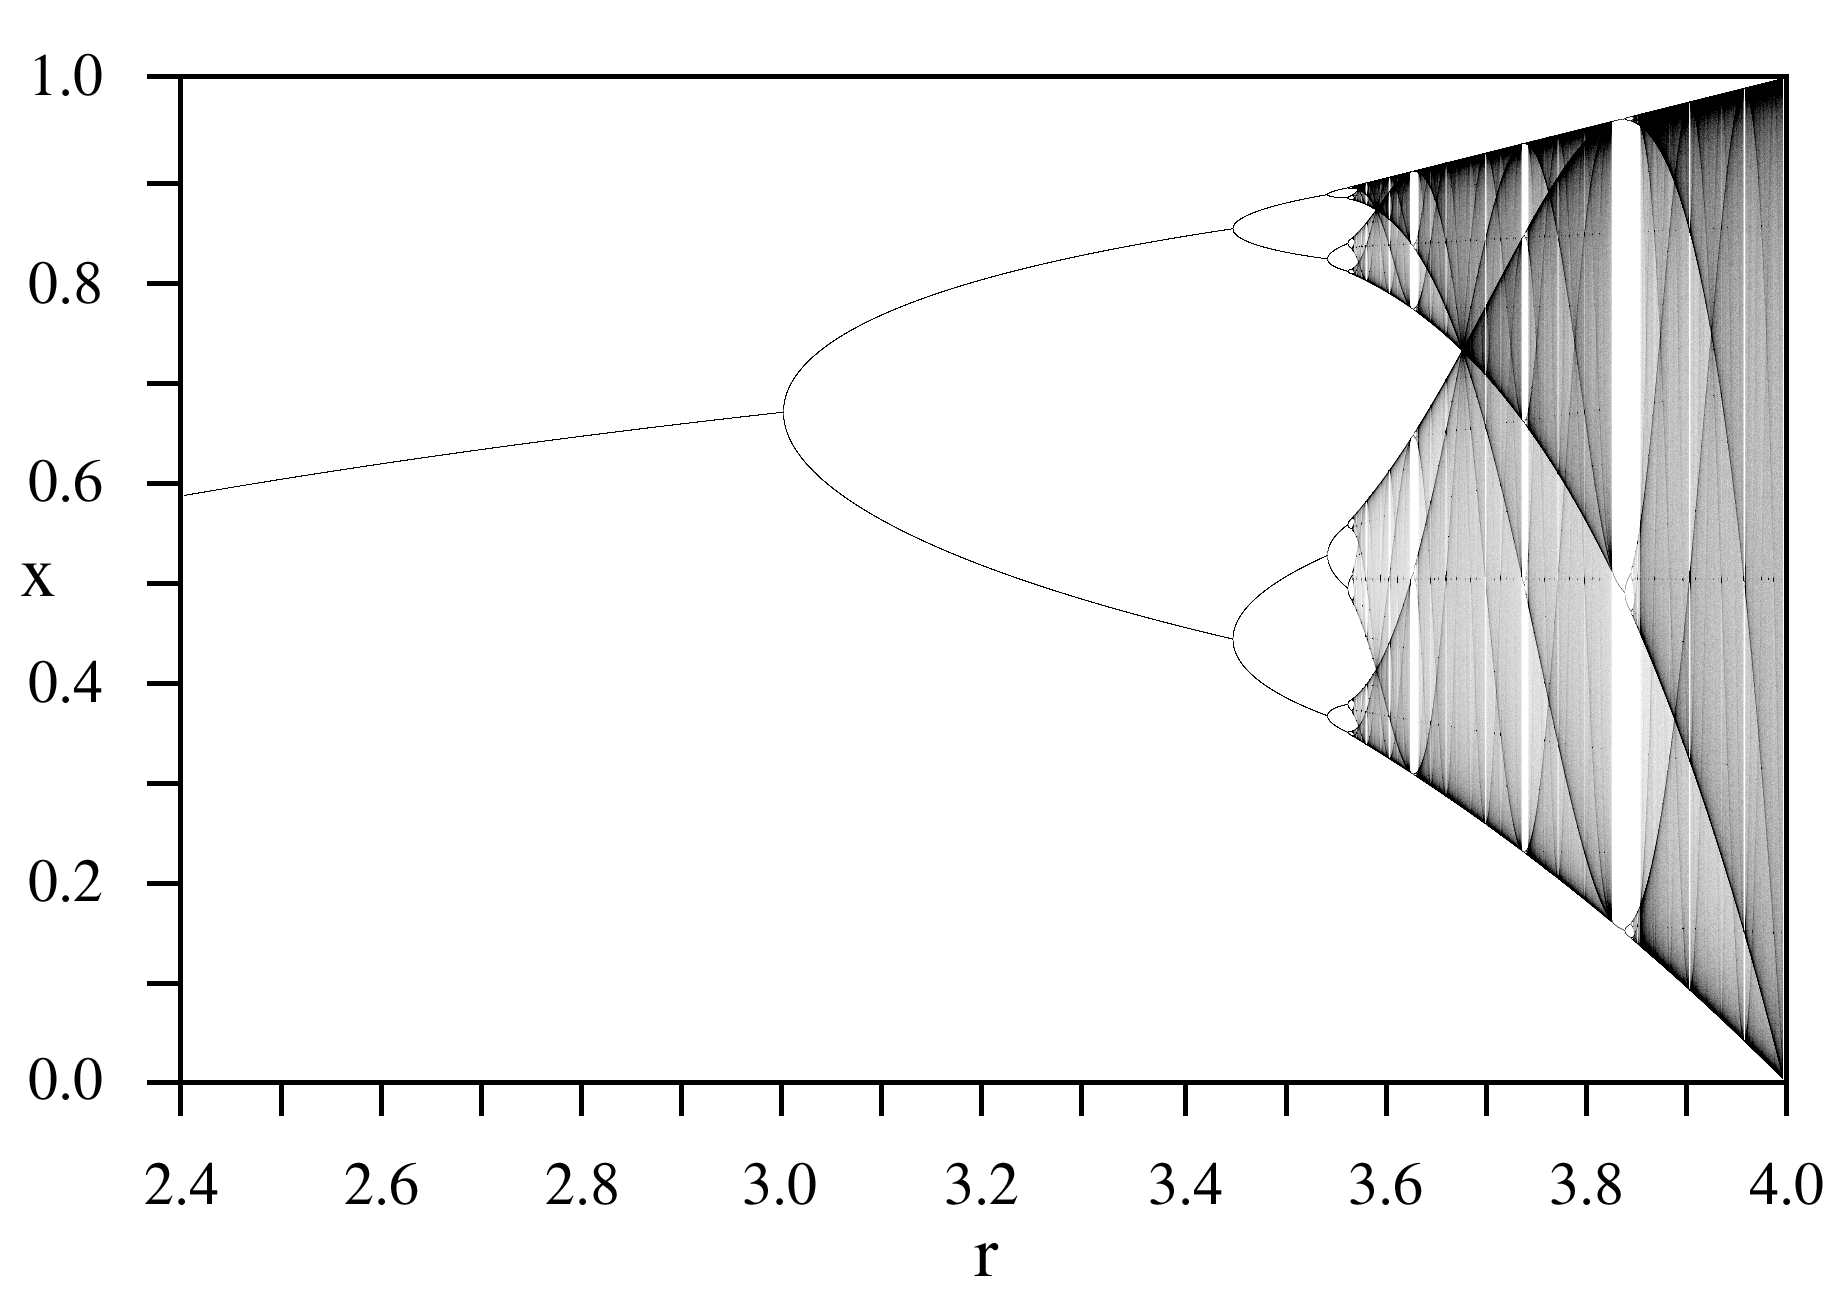 hight resolution of bifurcation diagram of the logistic map the attractor for any value of the parameter r is shown on the vertical line at that r